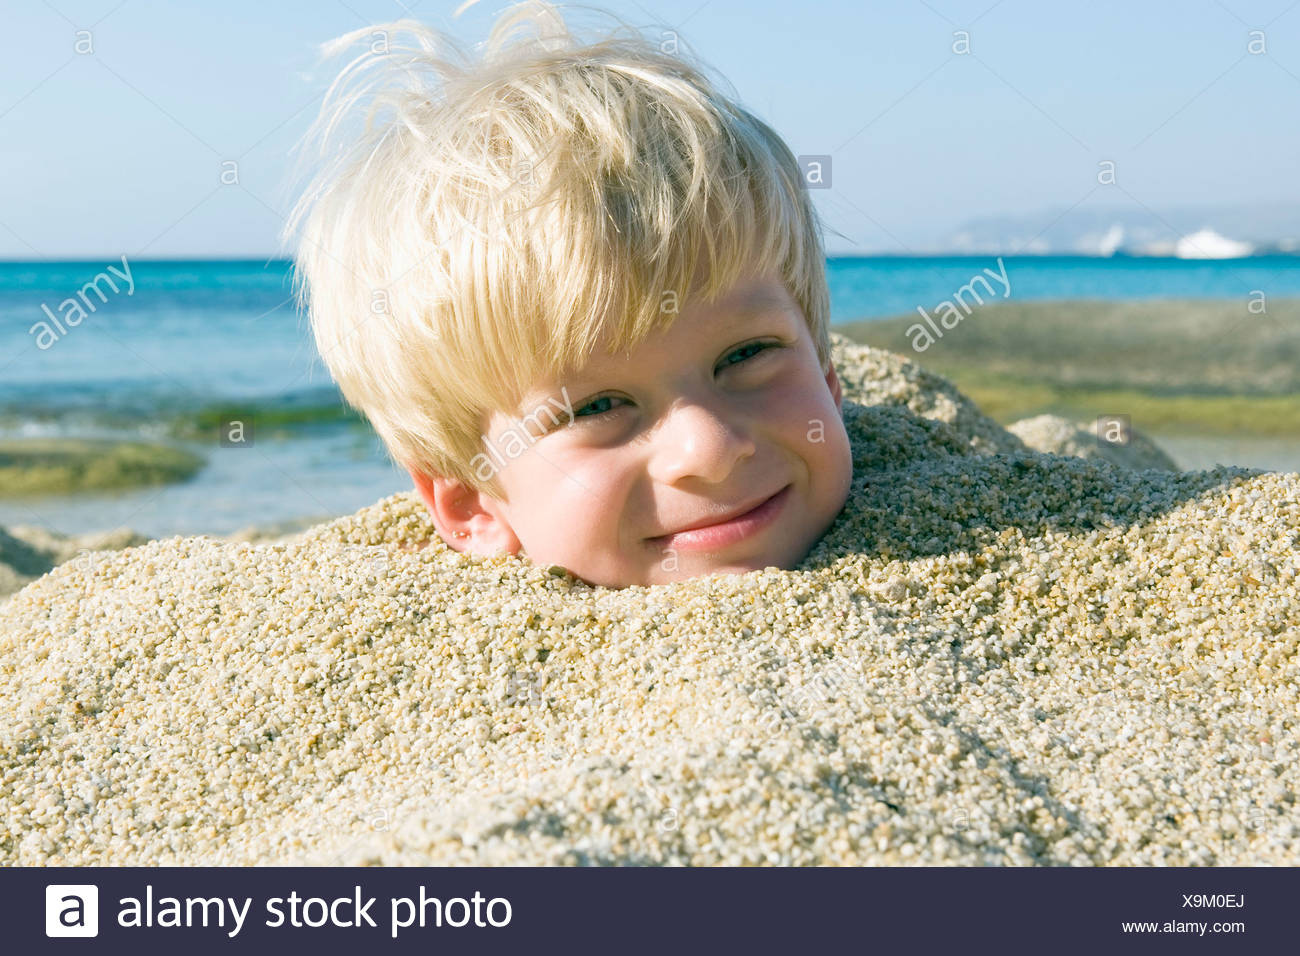 Young boy buried in the sand smiling. Stock Photo